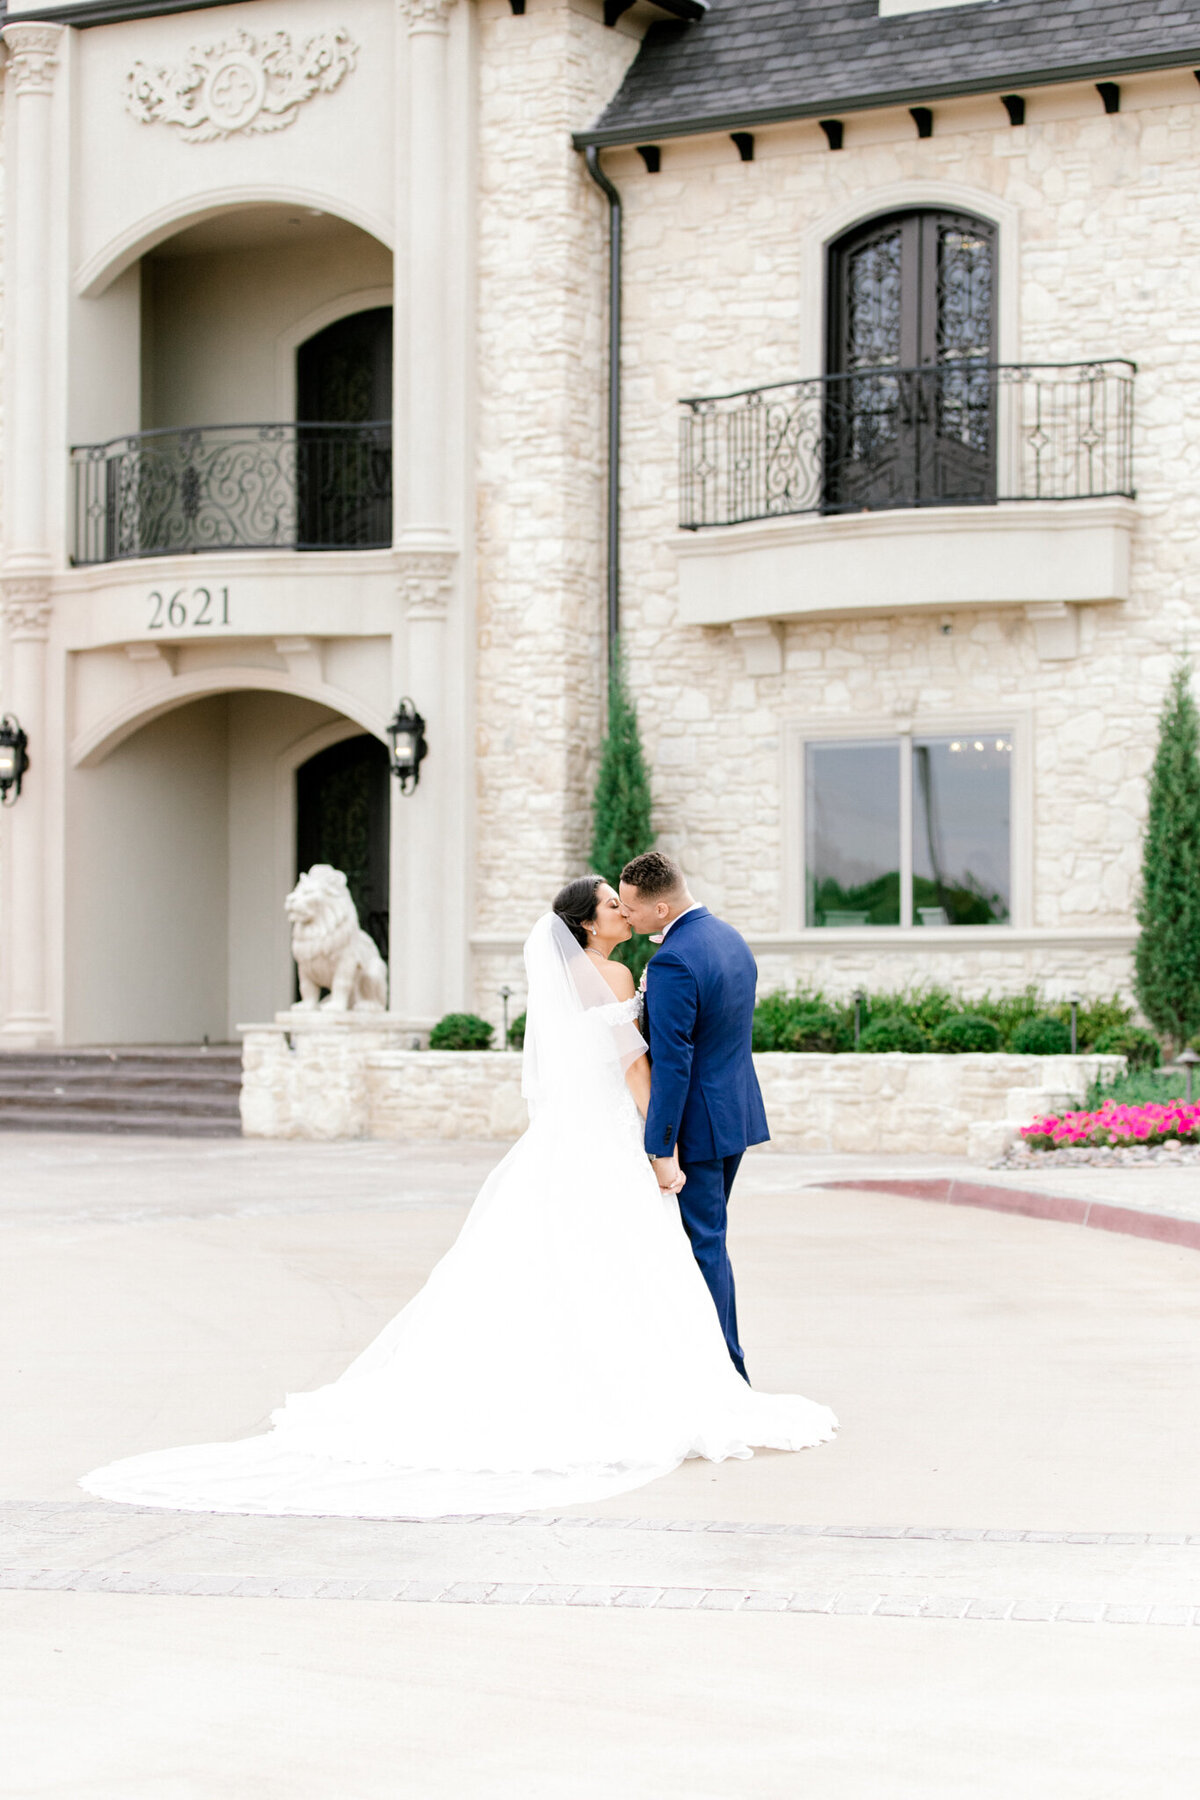 Jasmine & Josh Wedding at Knotting Hill Place | Dallas DFW Wedding Photographer | Sami Kathryn Photography-12